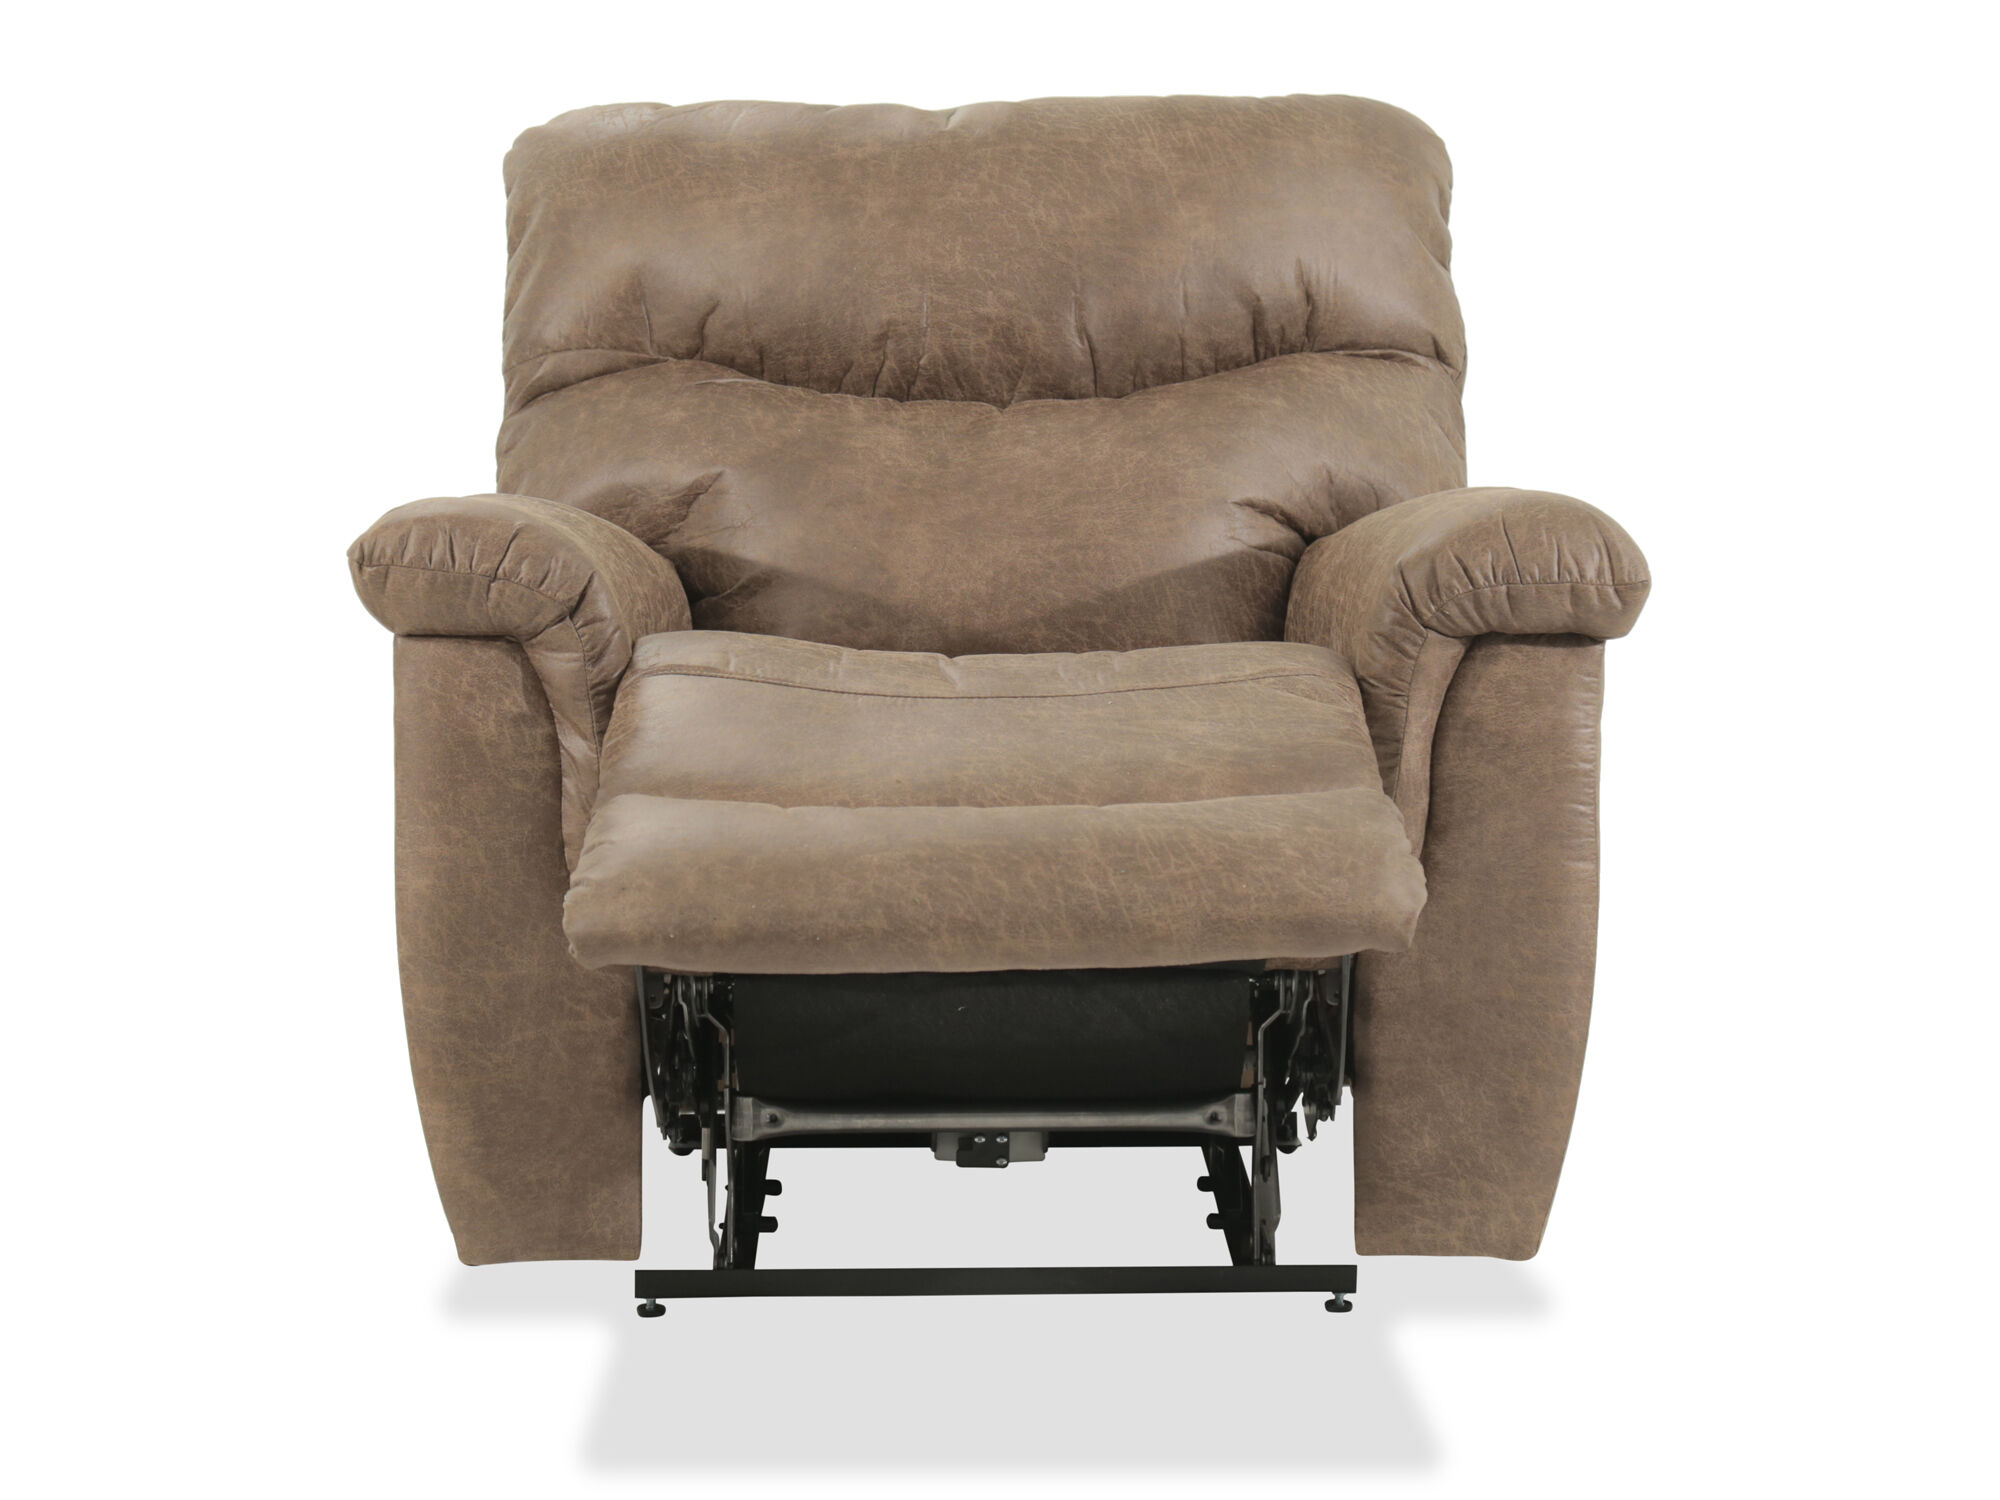 Recliner Pillow Pillow Top Arms Casual 42 5 Power Recliner In Brown Mathis